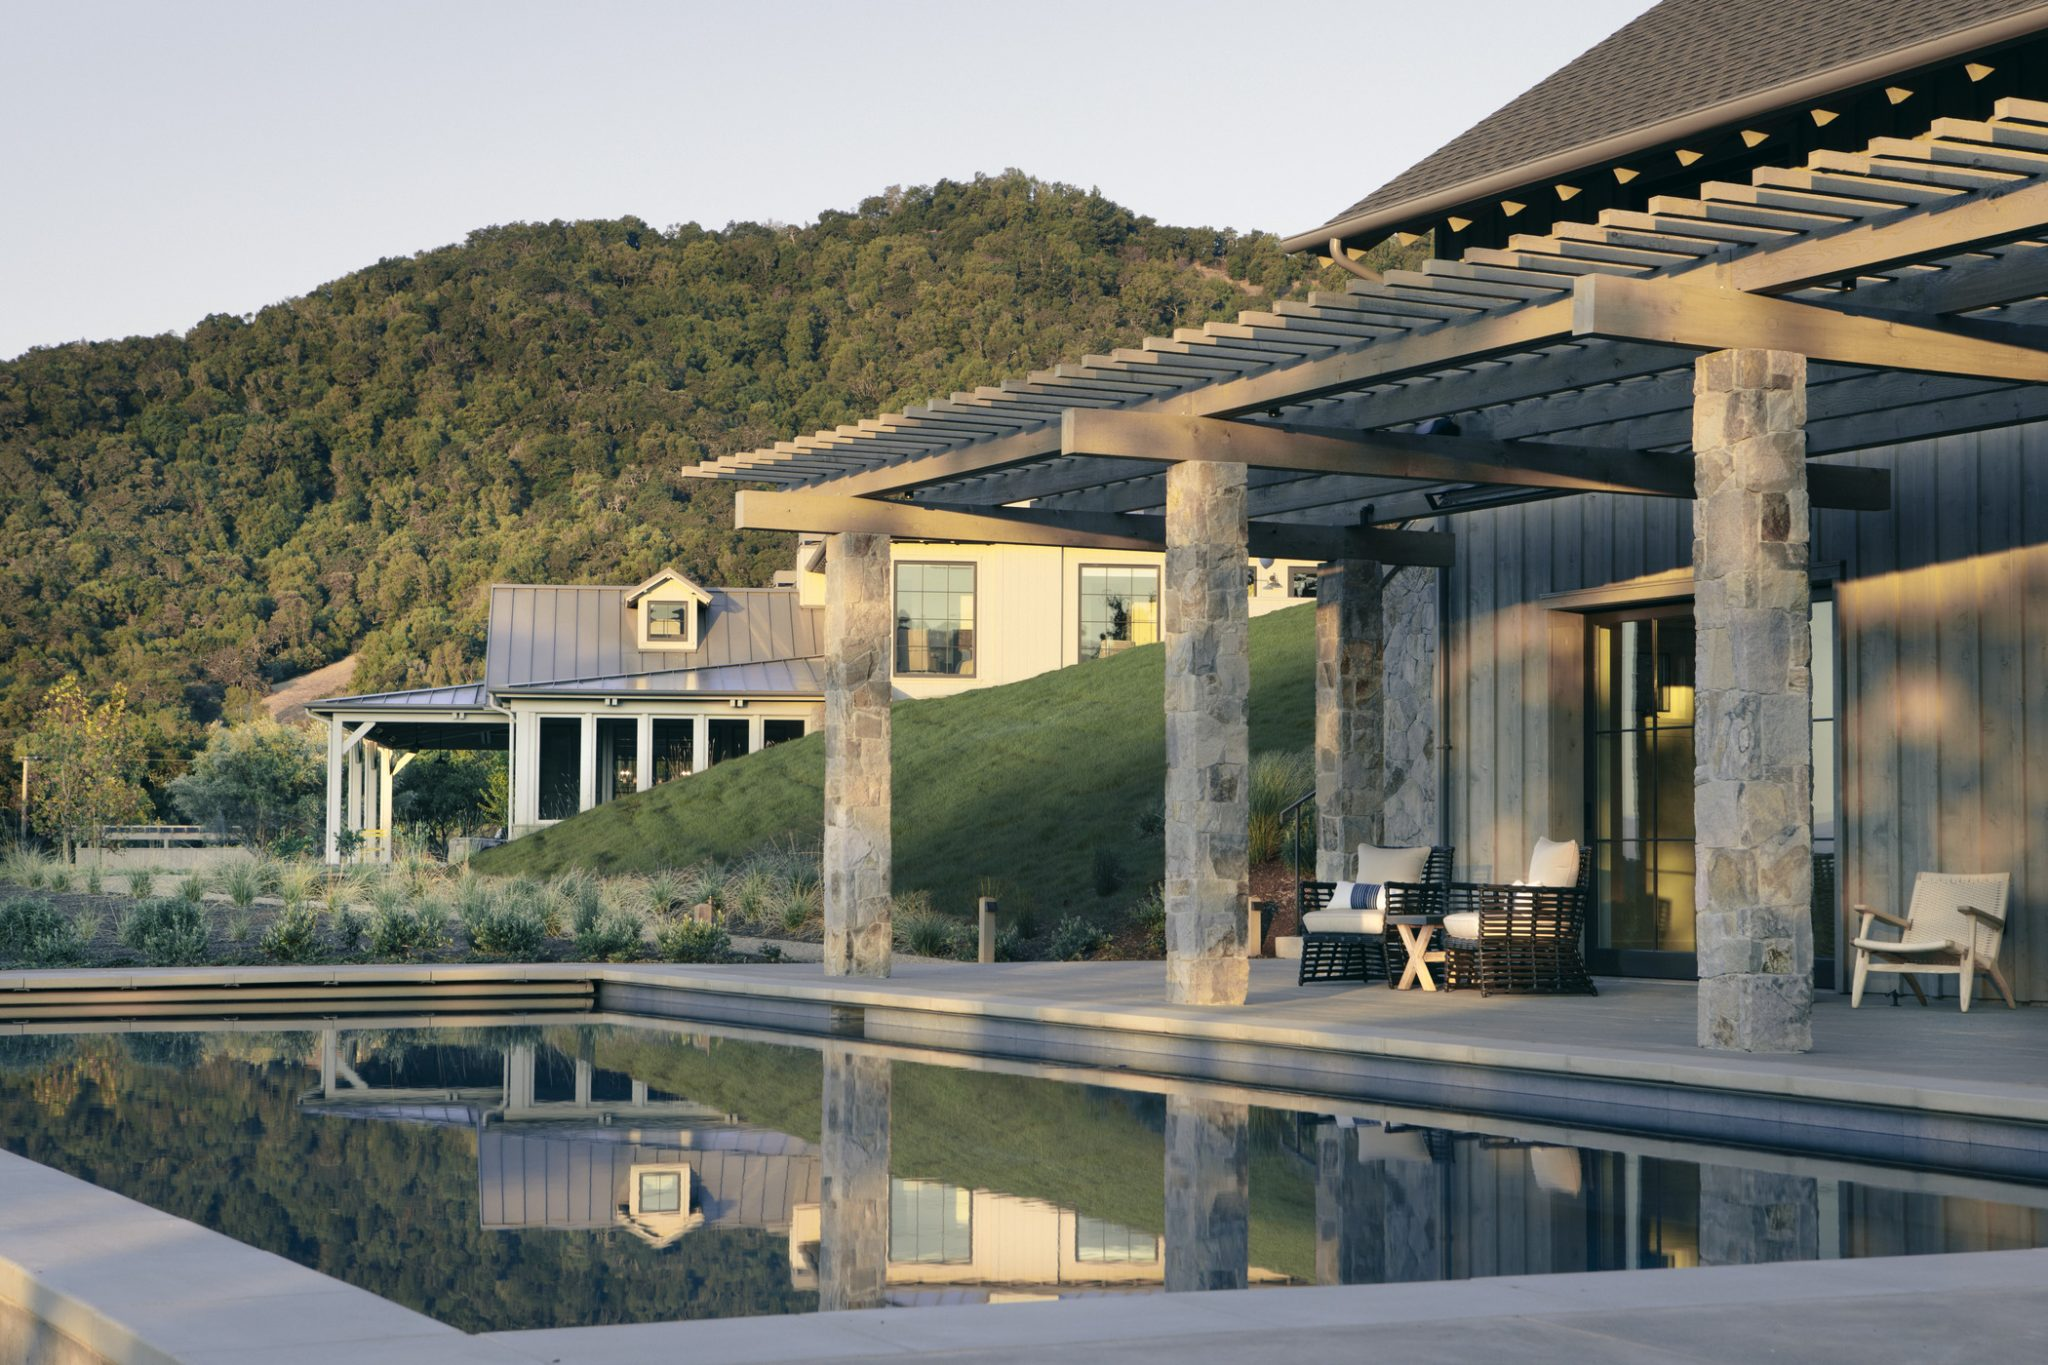 The trellis also helps to visually connect the pool area to the main house.